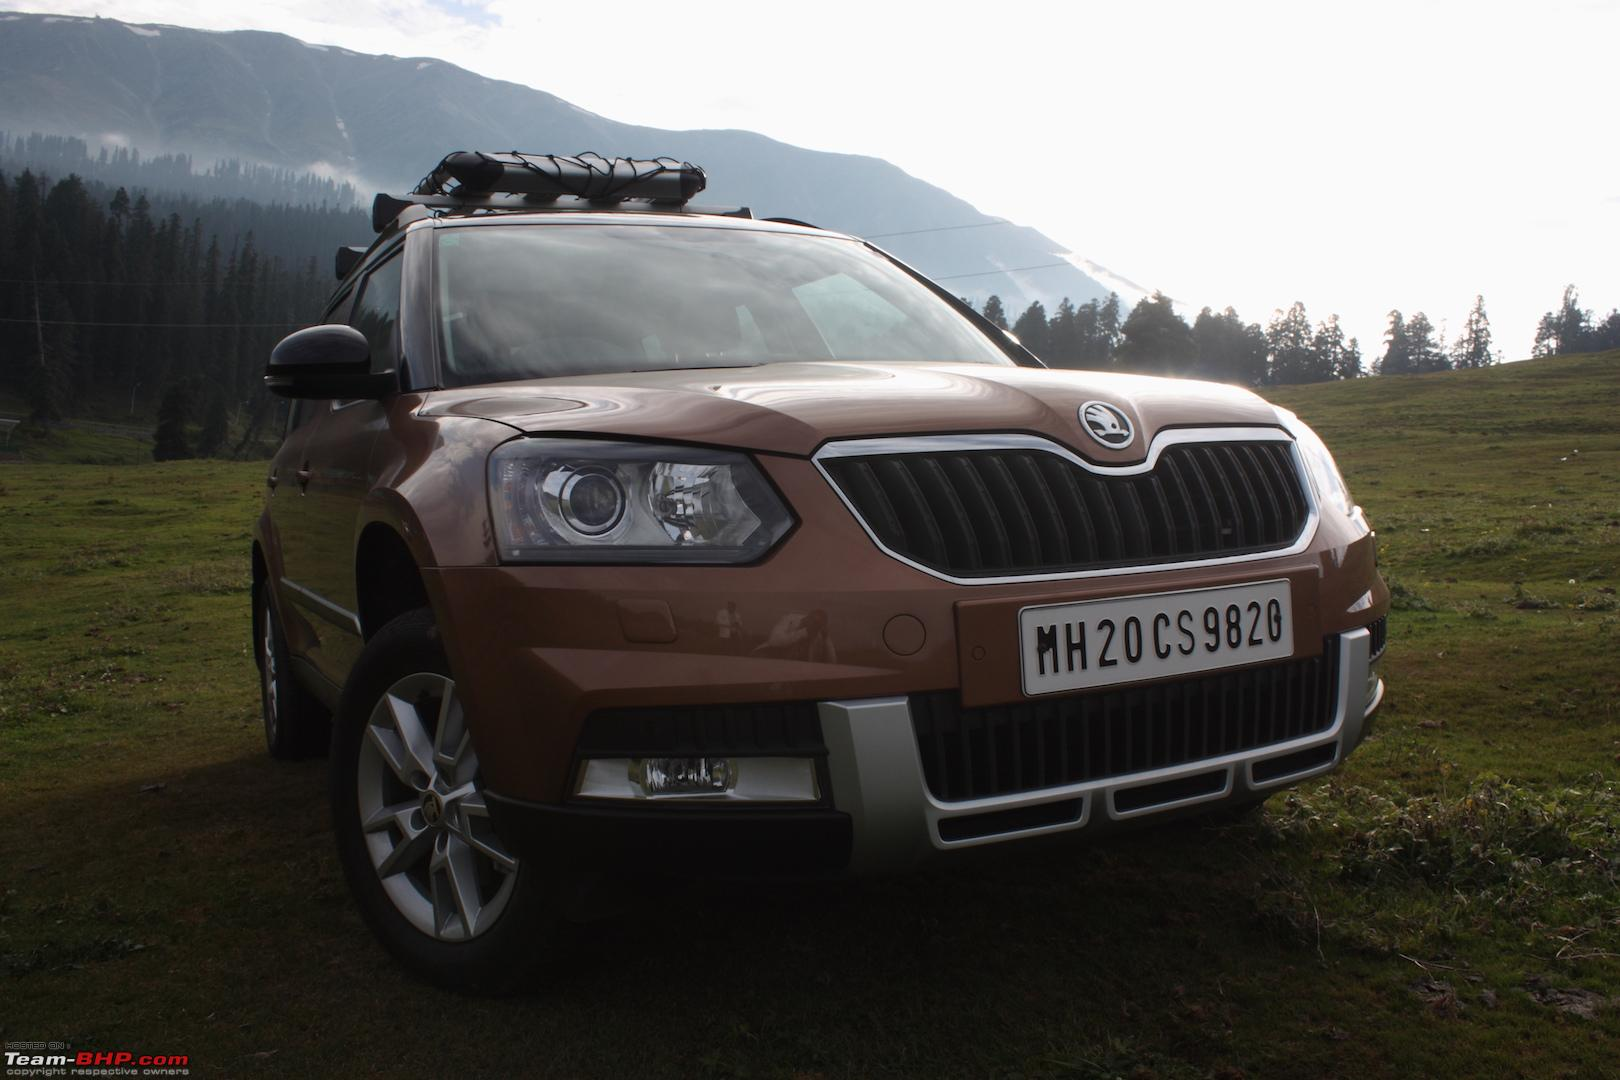 2014 skoda yeti facelift a close look team bhp. Black Bedroom Furniture Sets. Home Design Ideas